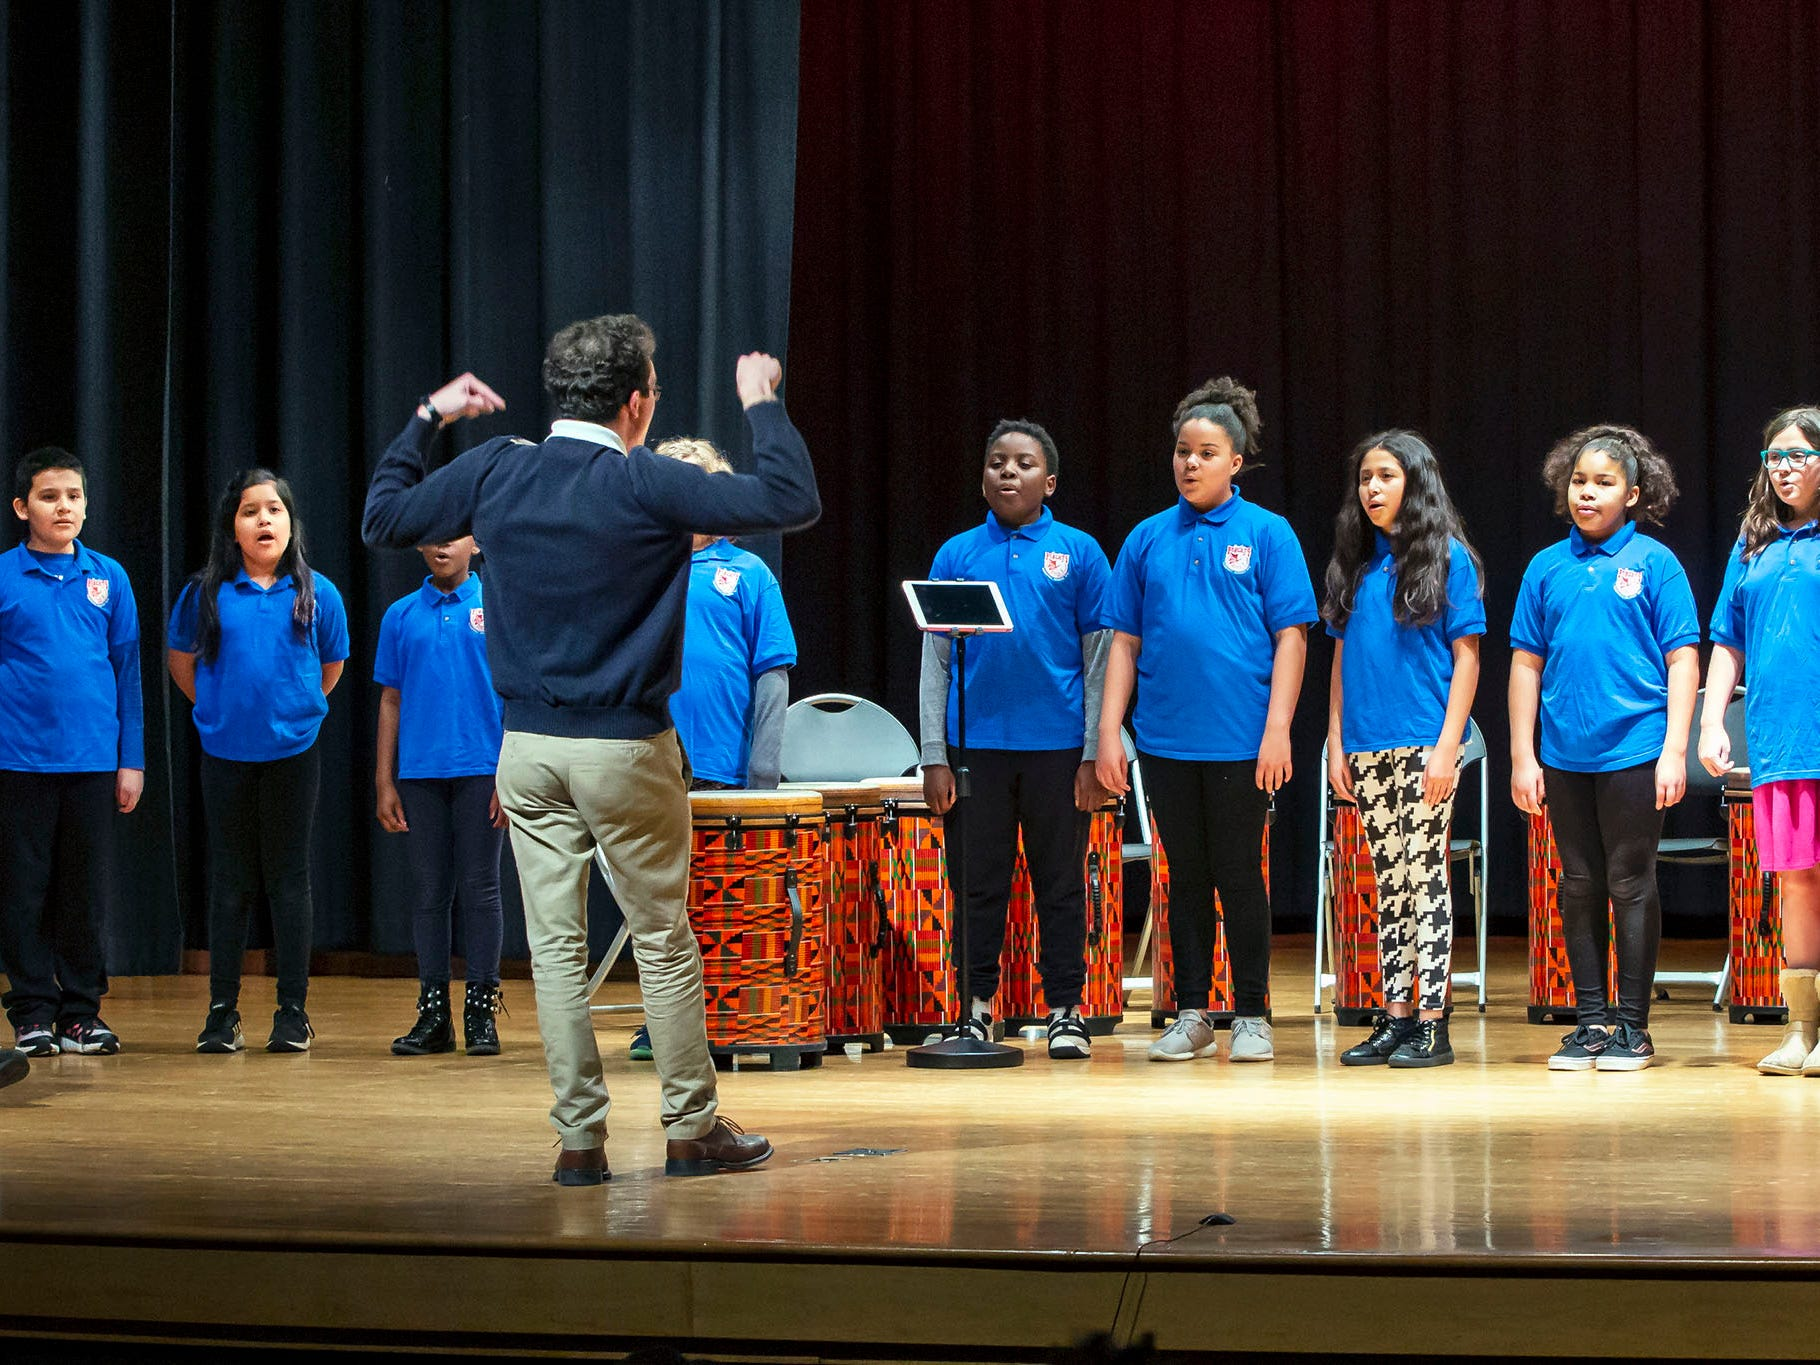 Bradley Academy Glee Club perform at the African-American Cultural Celebration held at Patterson Park Community Center.